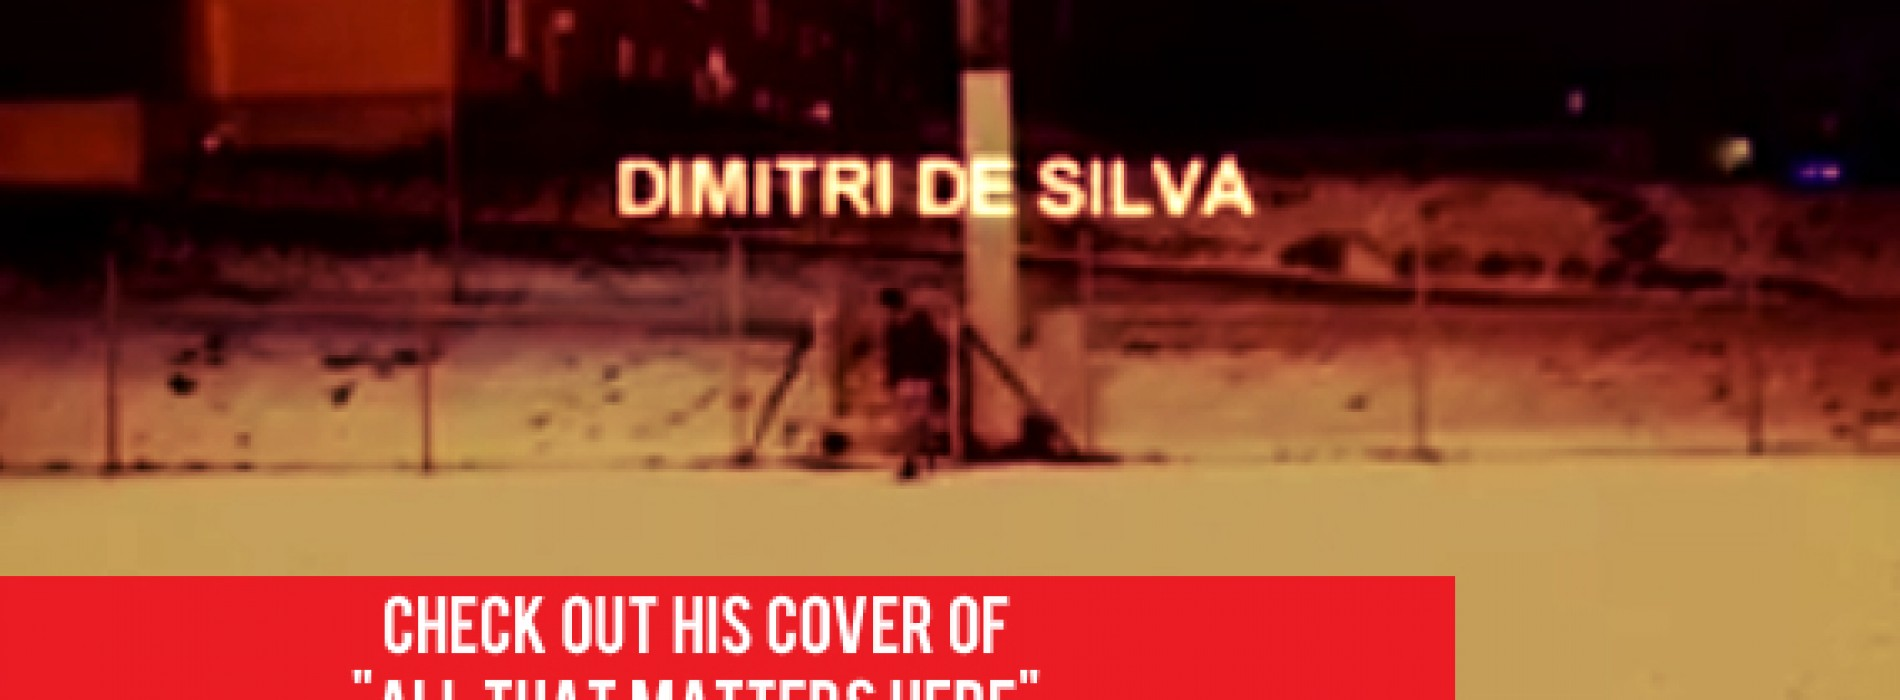 Dimitri De Silva – All That Matters (Cover)